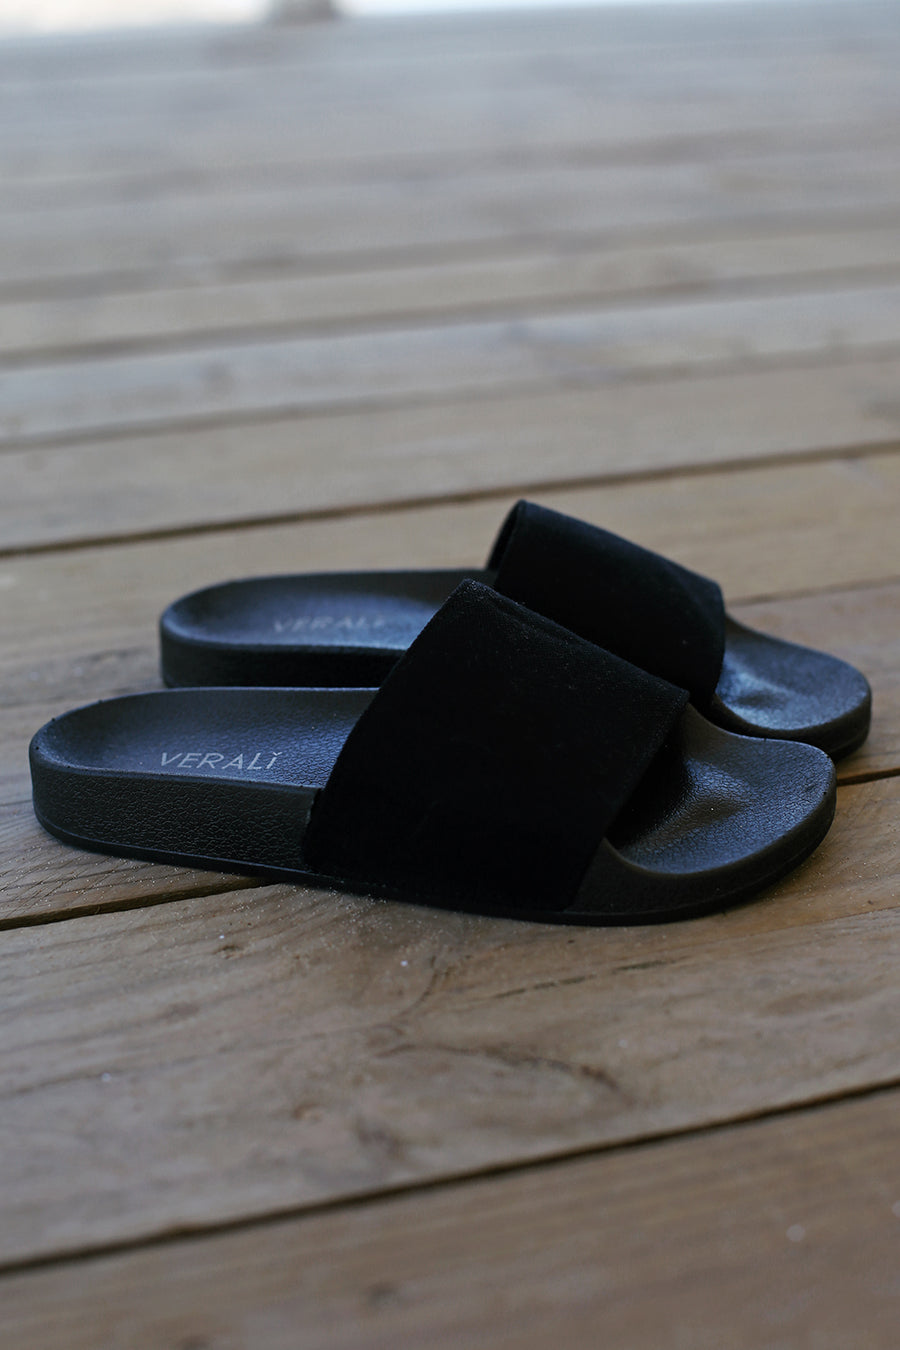 Splish Slides by Verali